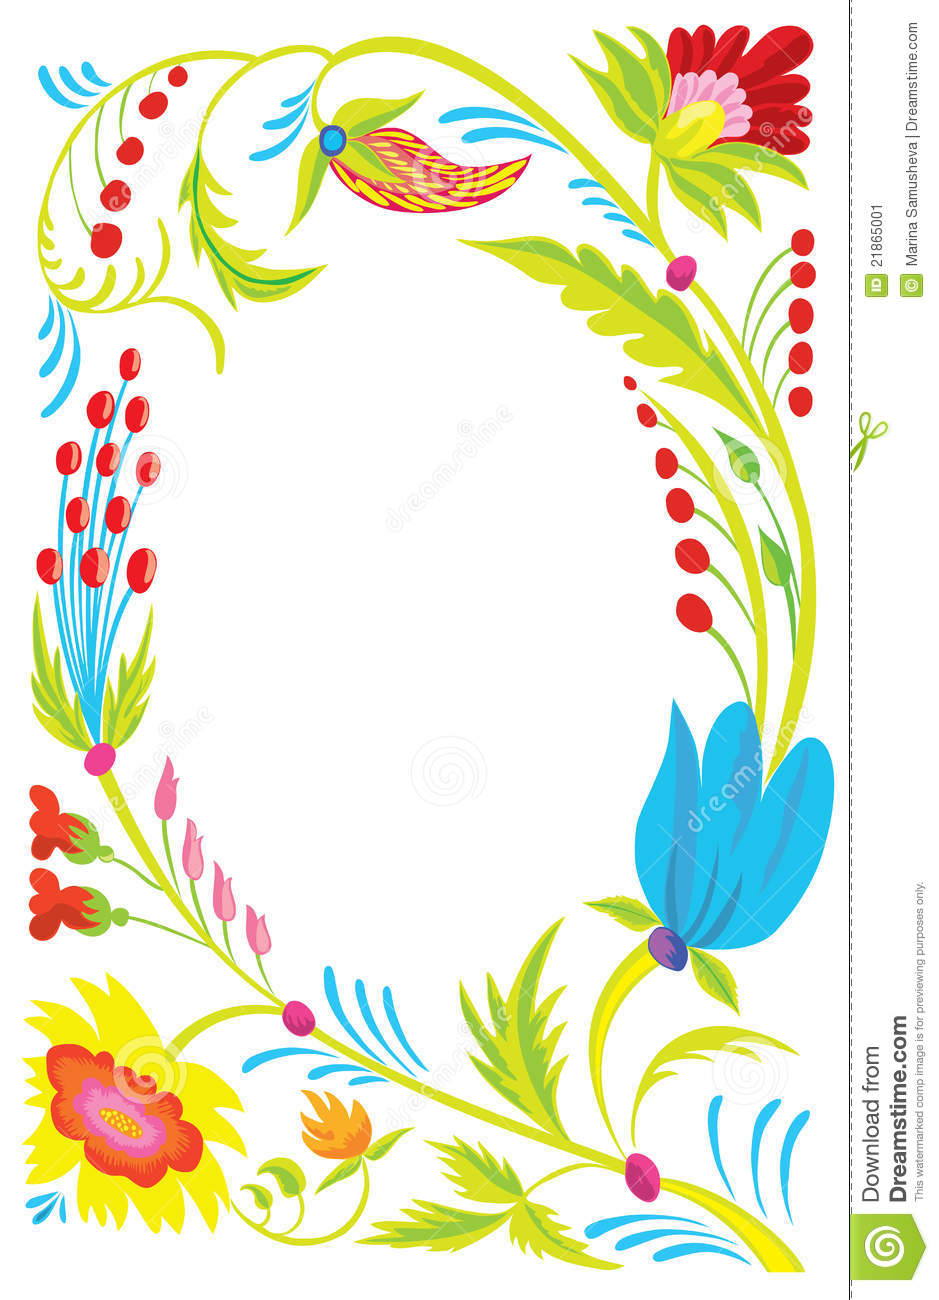 Beautiful Flower Design | www.pixshark.com - Images ...